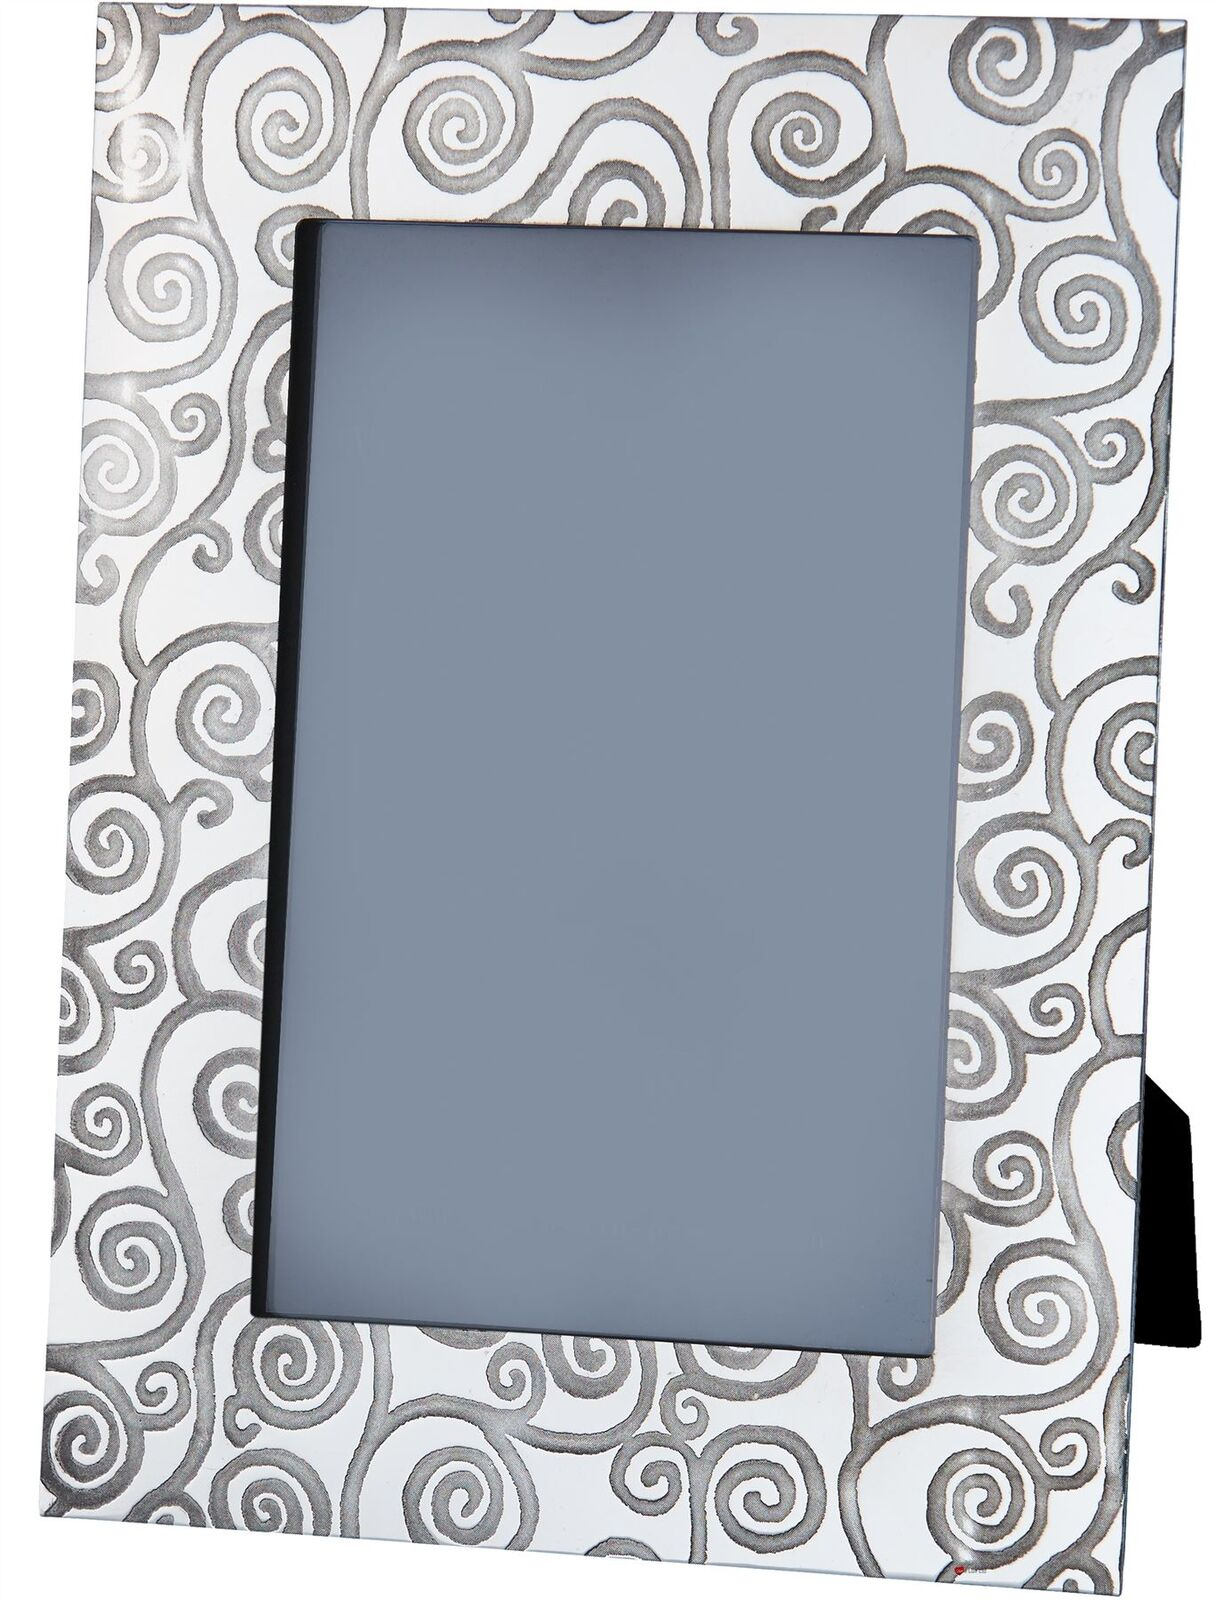 Medium Pewter Photo Frame WIth Tree of Life Design 6 x 4 Inch